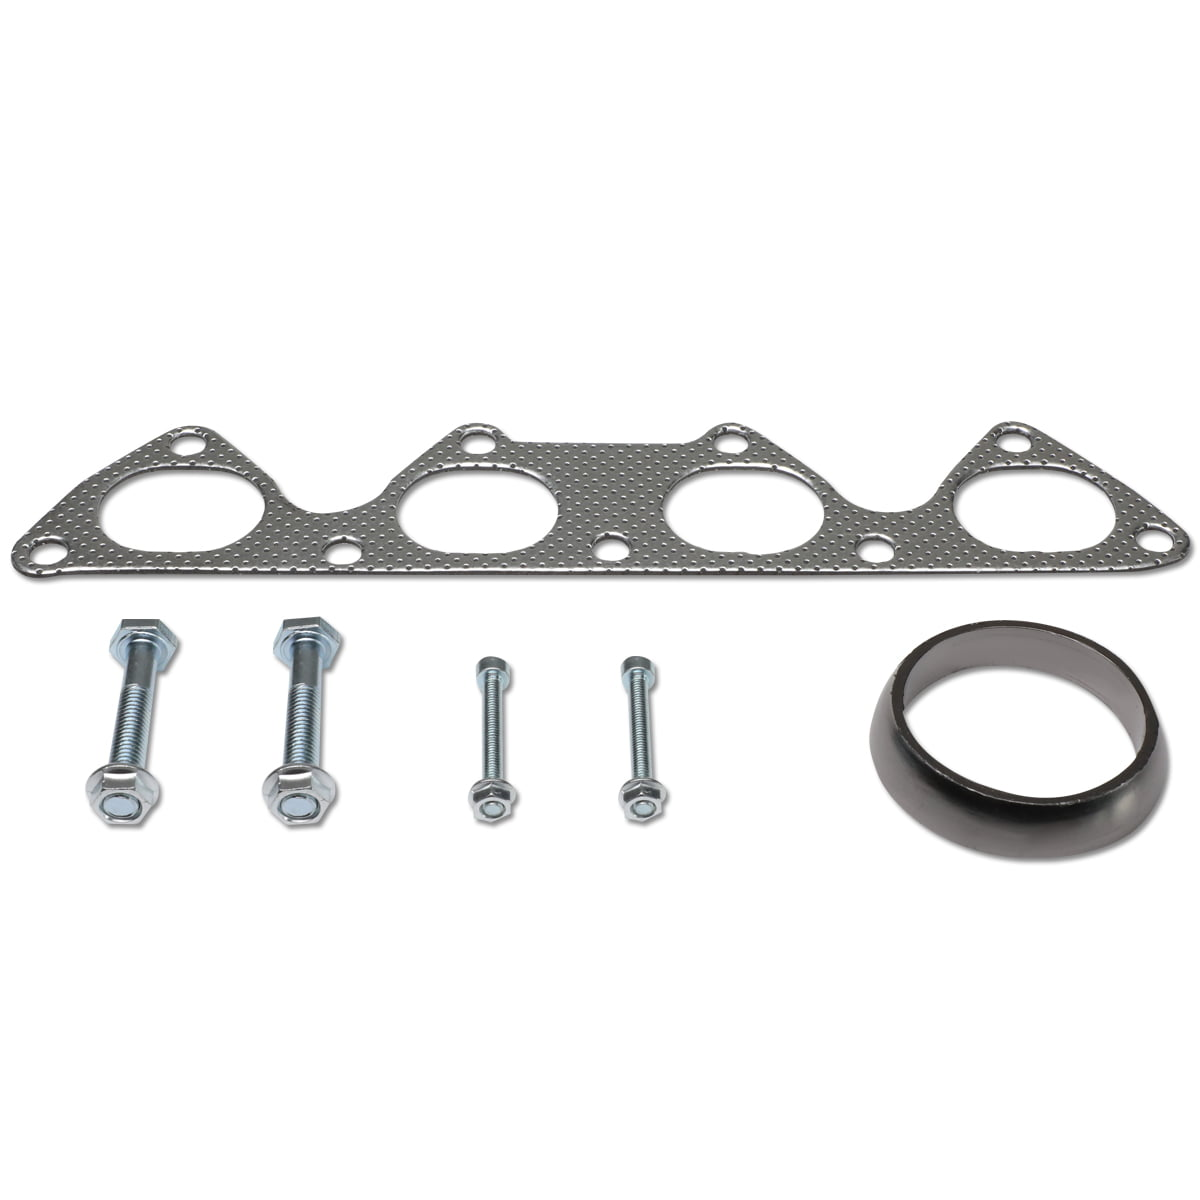 For 1990 To 2001 Acura Integra / Honda Civic Si / CRV